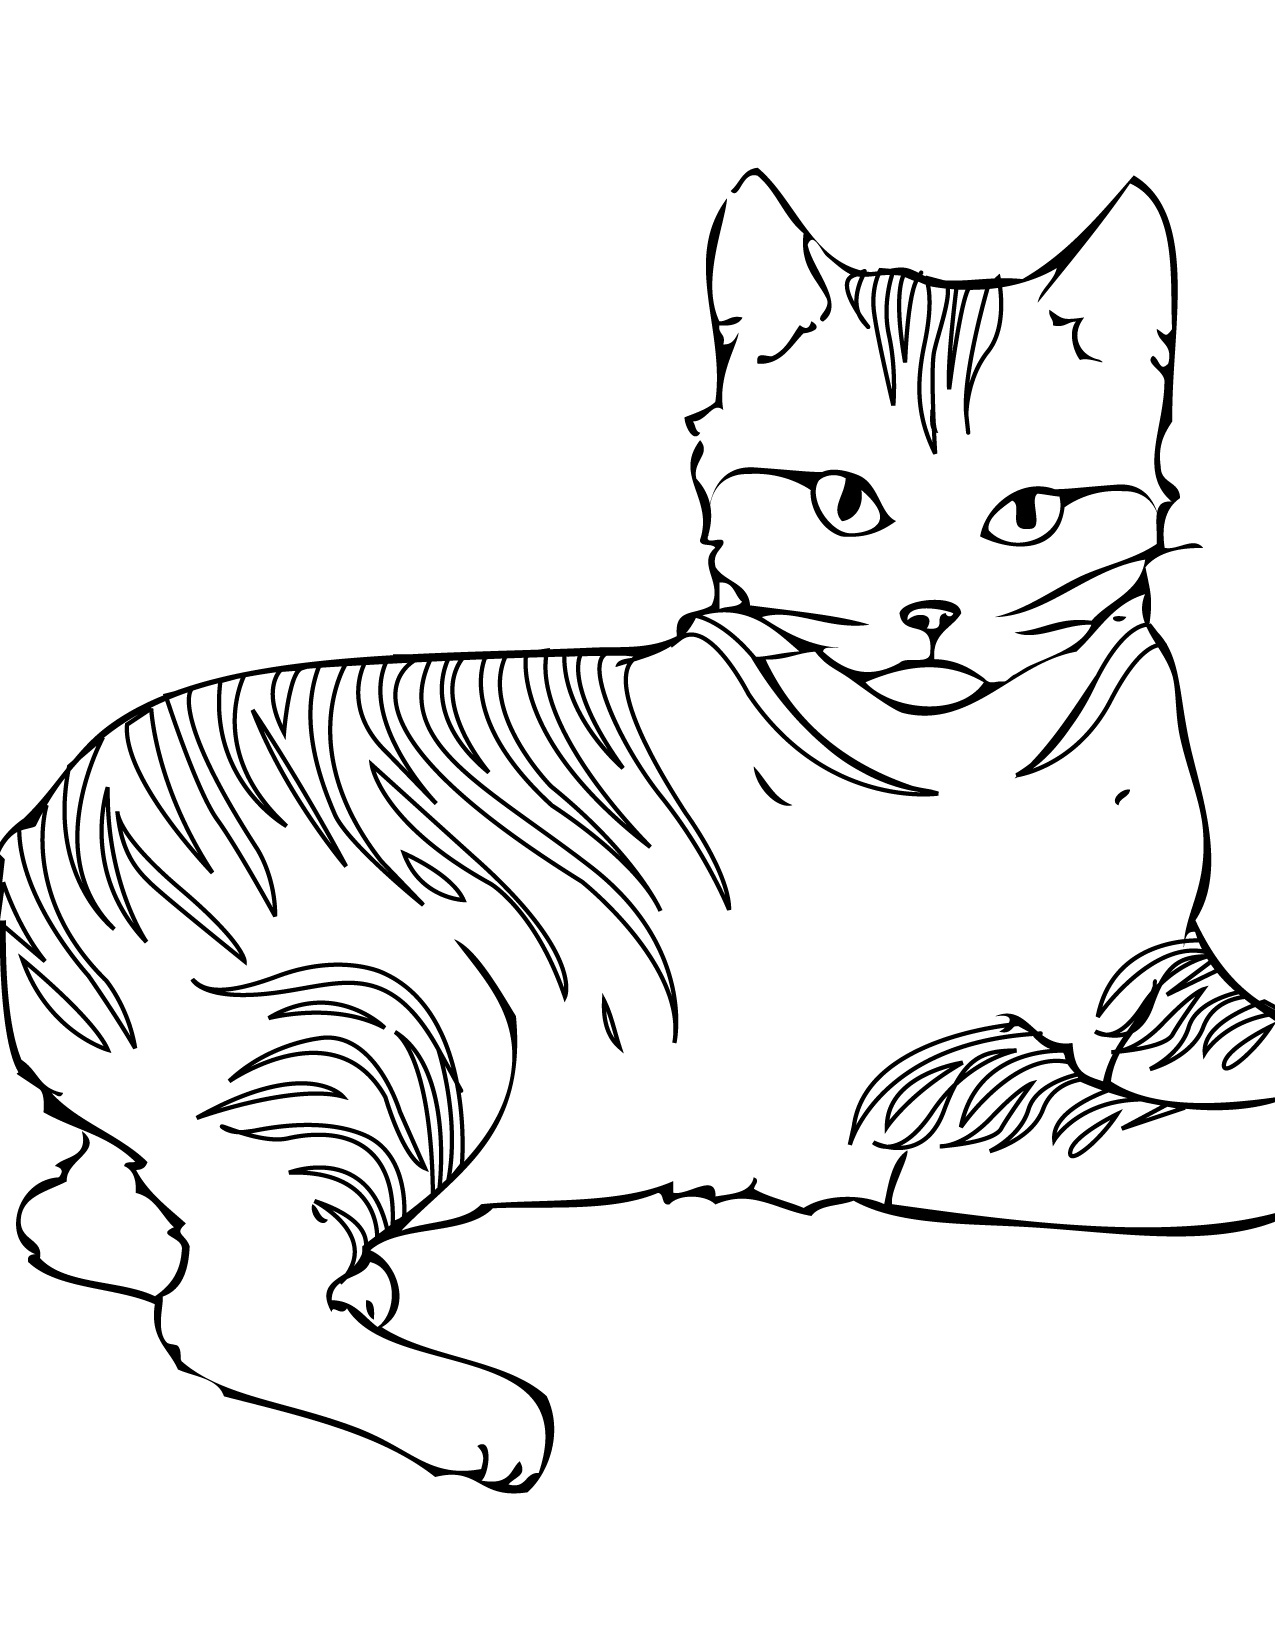 Free Printable Cat Coloring Pages For Kids - Cat Coloring Pages Free Printable